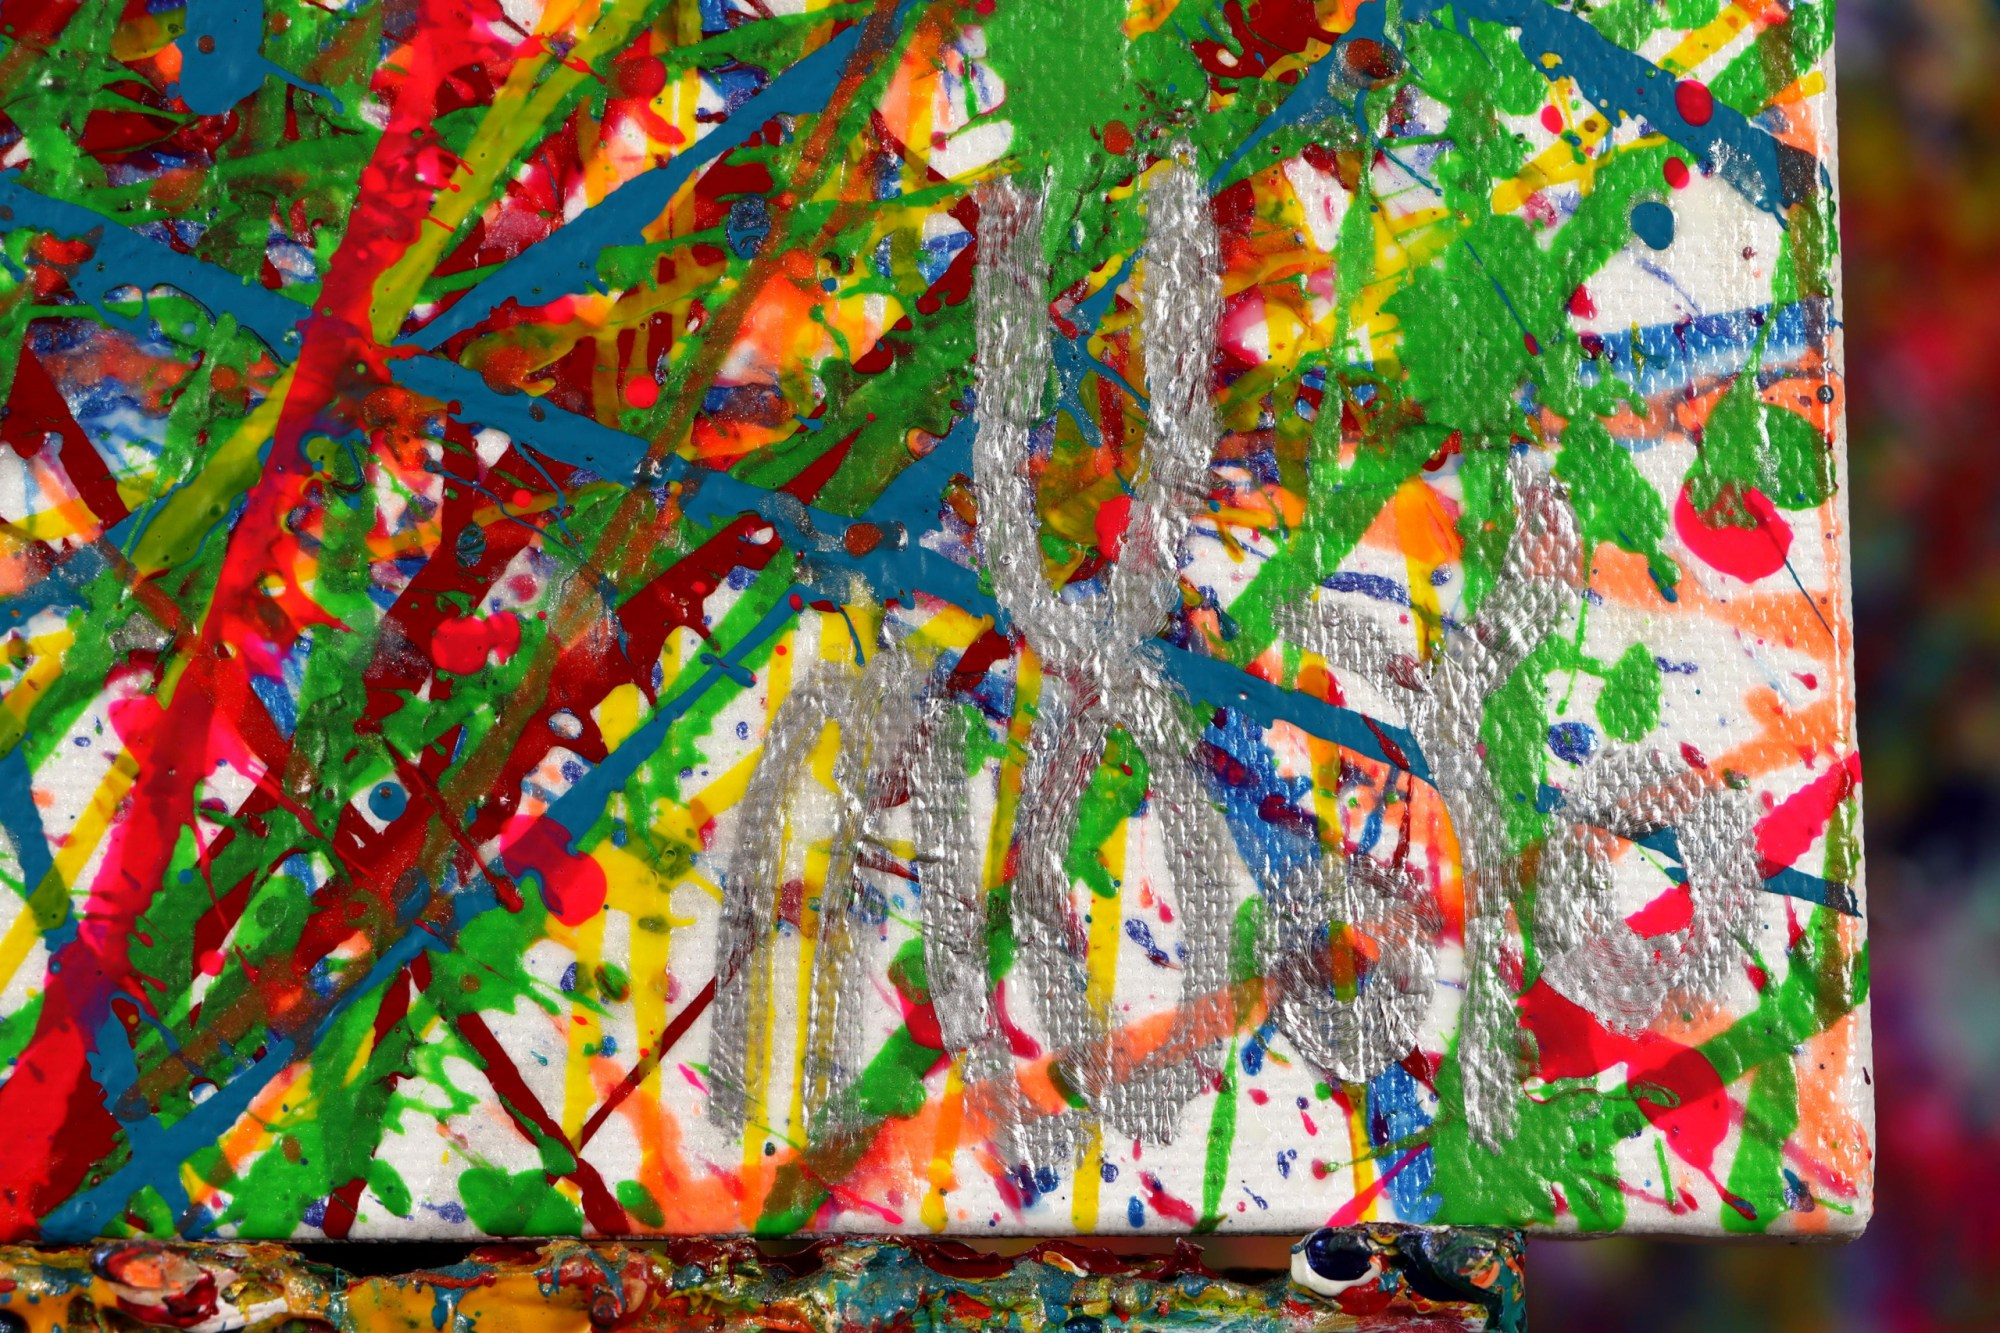 SIGNATURE / Colorful display of affection 2 (2021) / Diptych